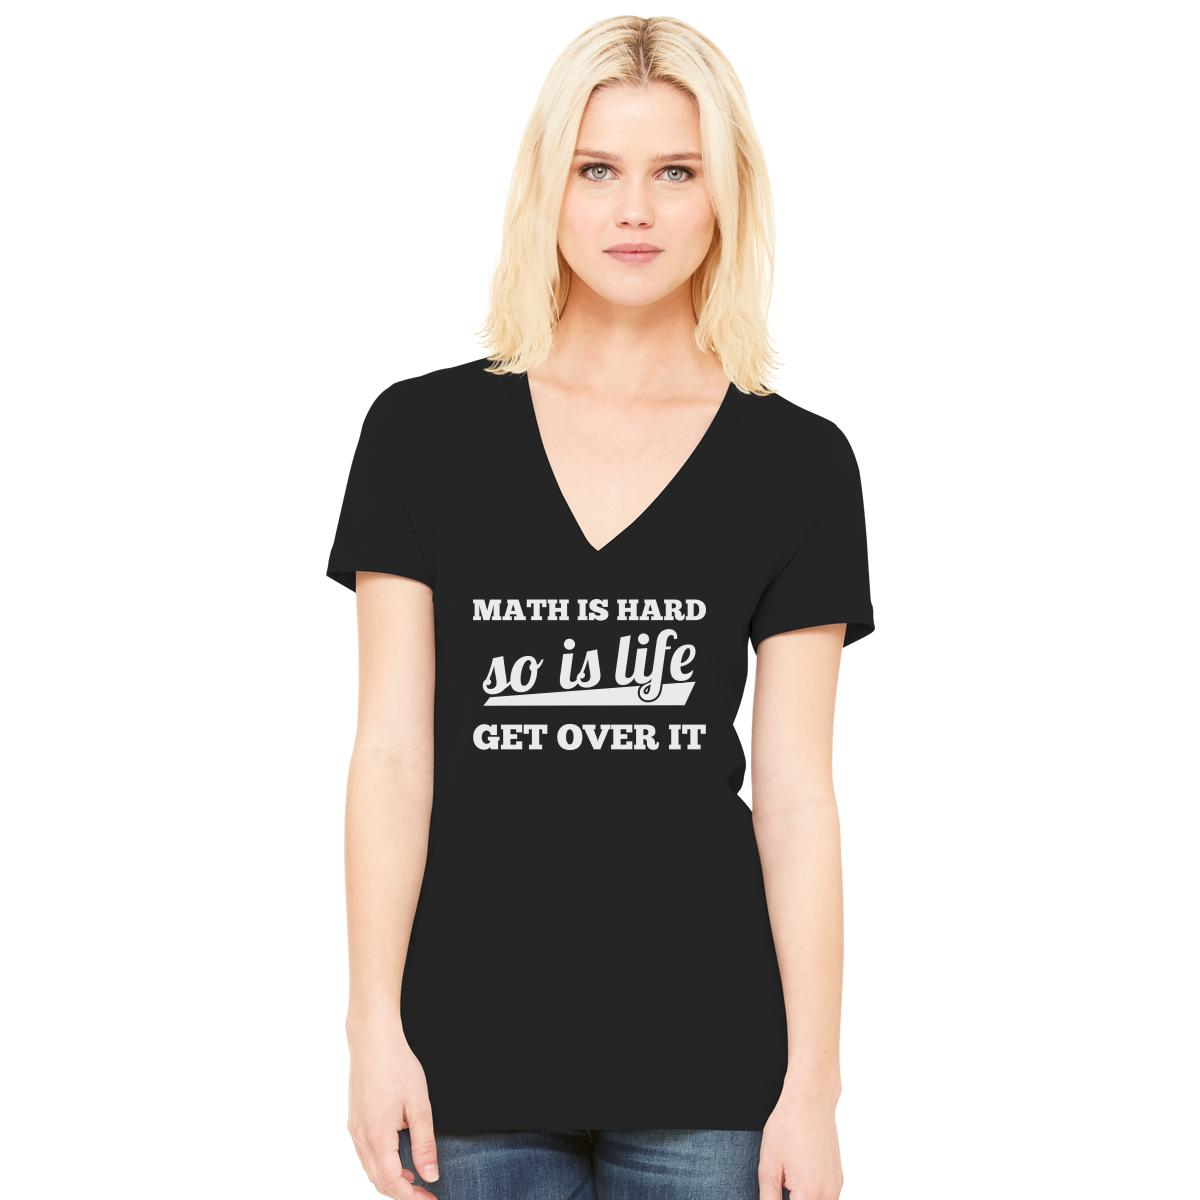 math is hard so is life get over it women's v-neck t-shirt